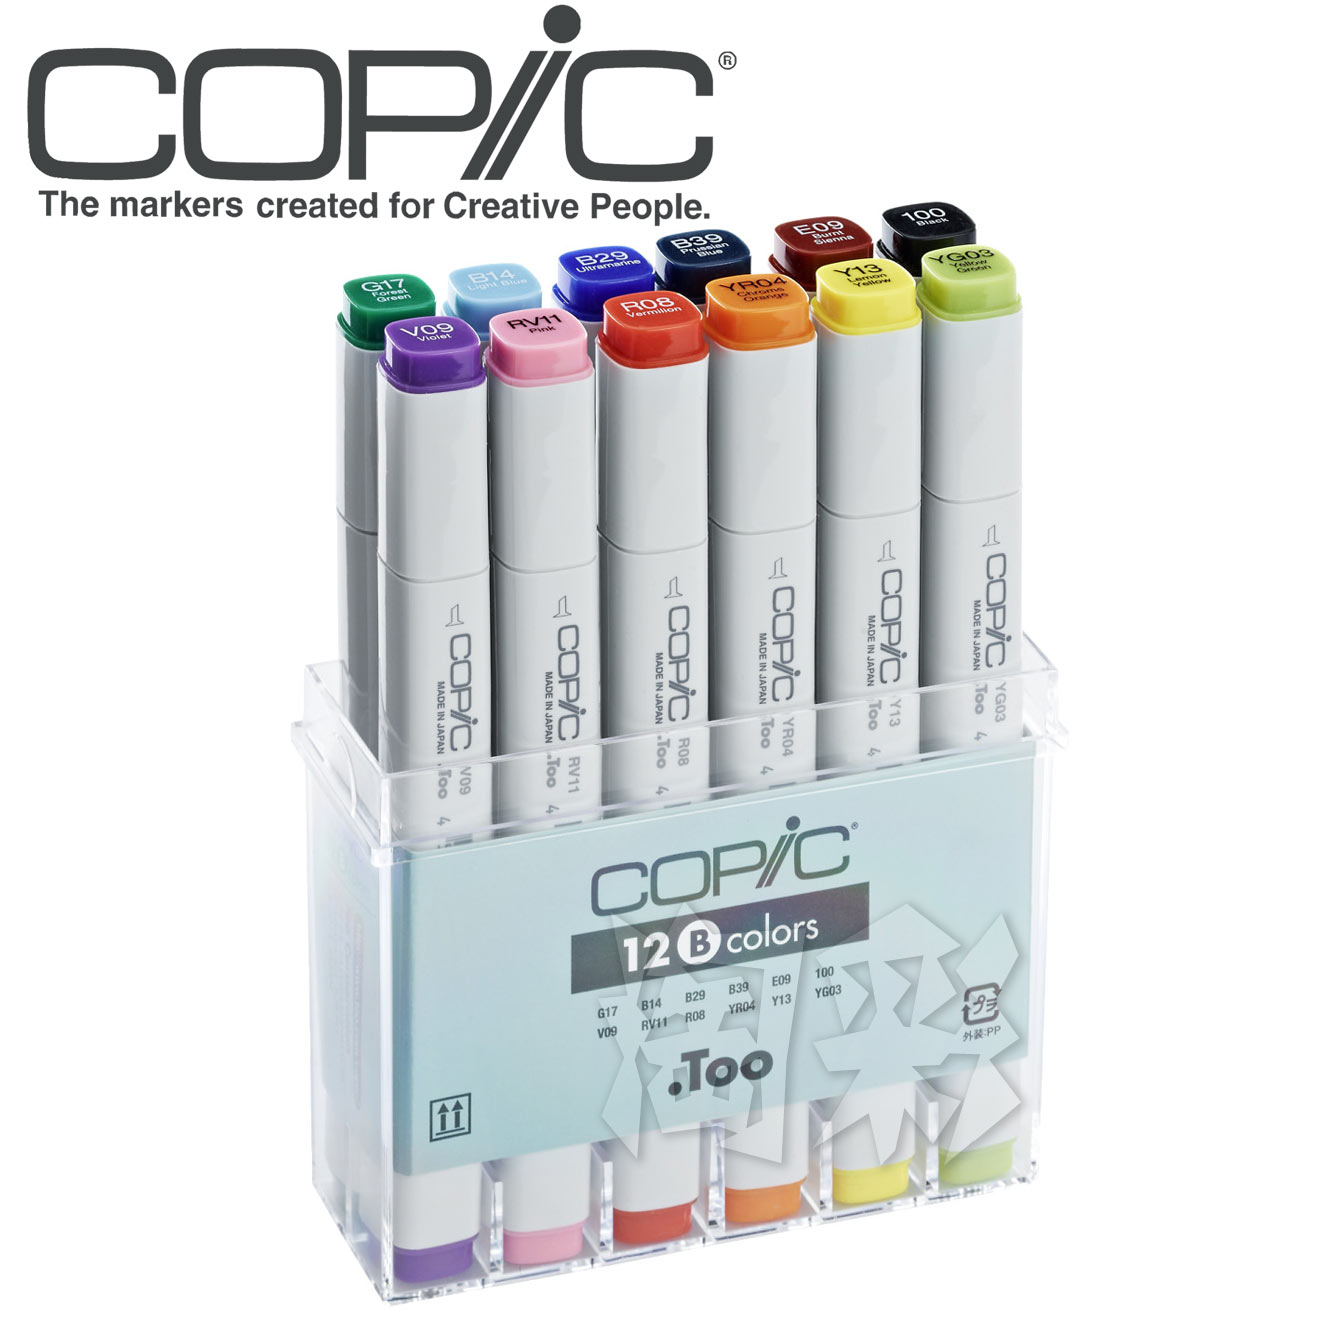 alcohol 12 colors copic markers the basic color color. Black Bedroom Furniture Sets. Home Design Ideas